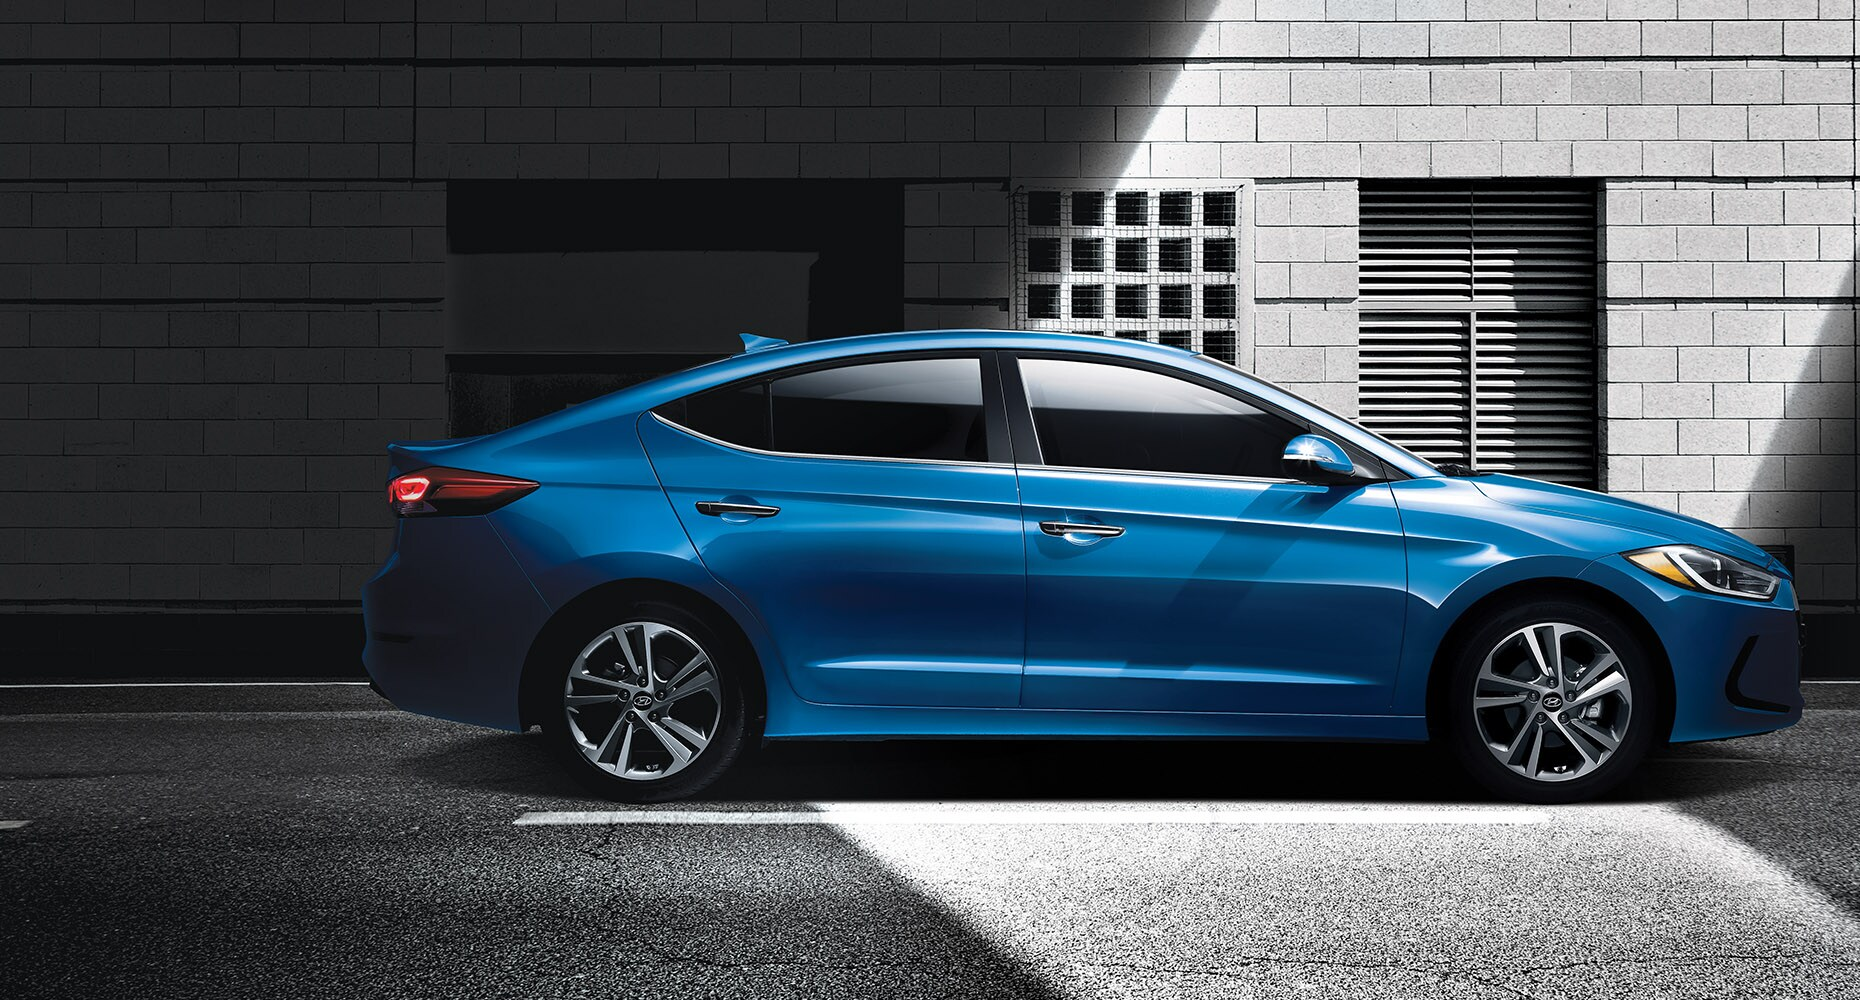 Hyundai Elantra: Description and Operation